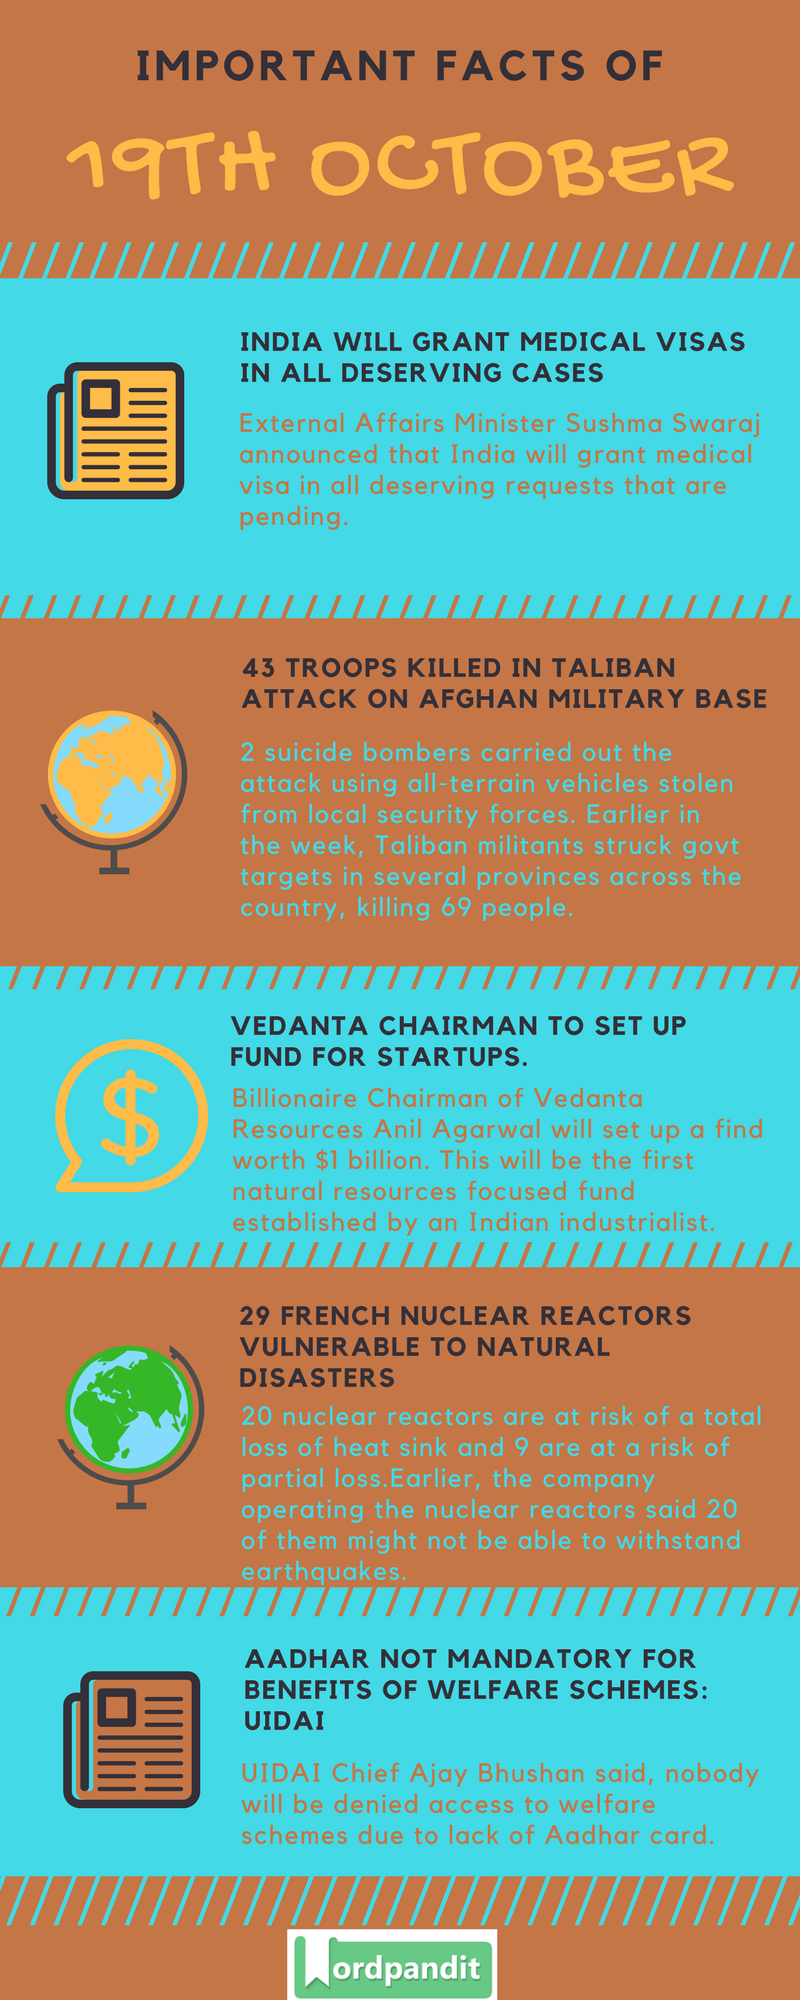 Daily-Current-Affairs-19-october-2017-Current-Affairs-Quiz-october-19-2017-Current-Affairs-Infographic